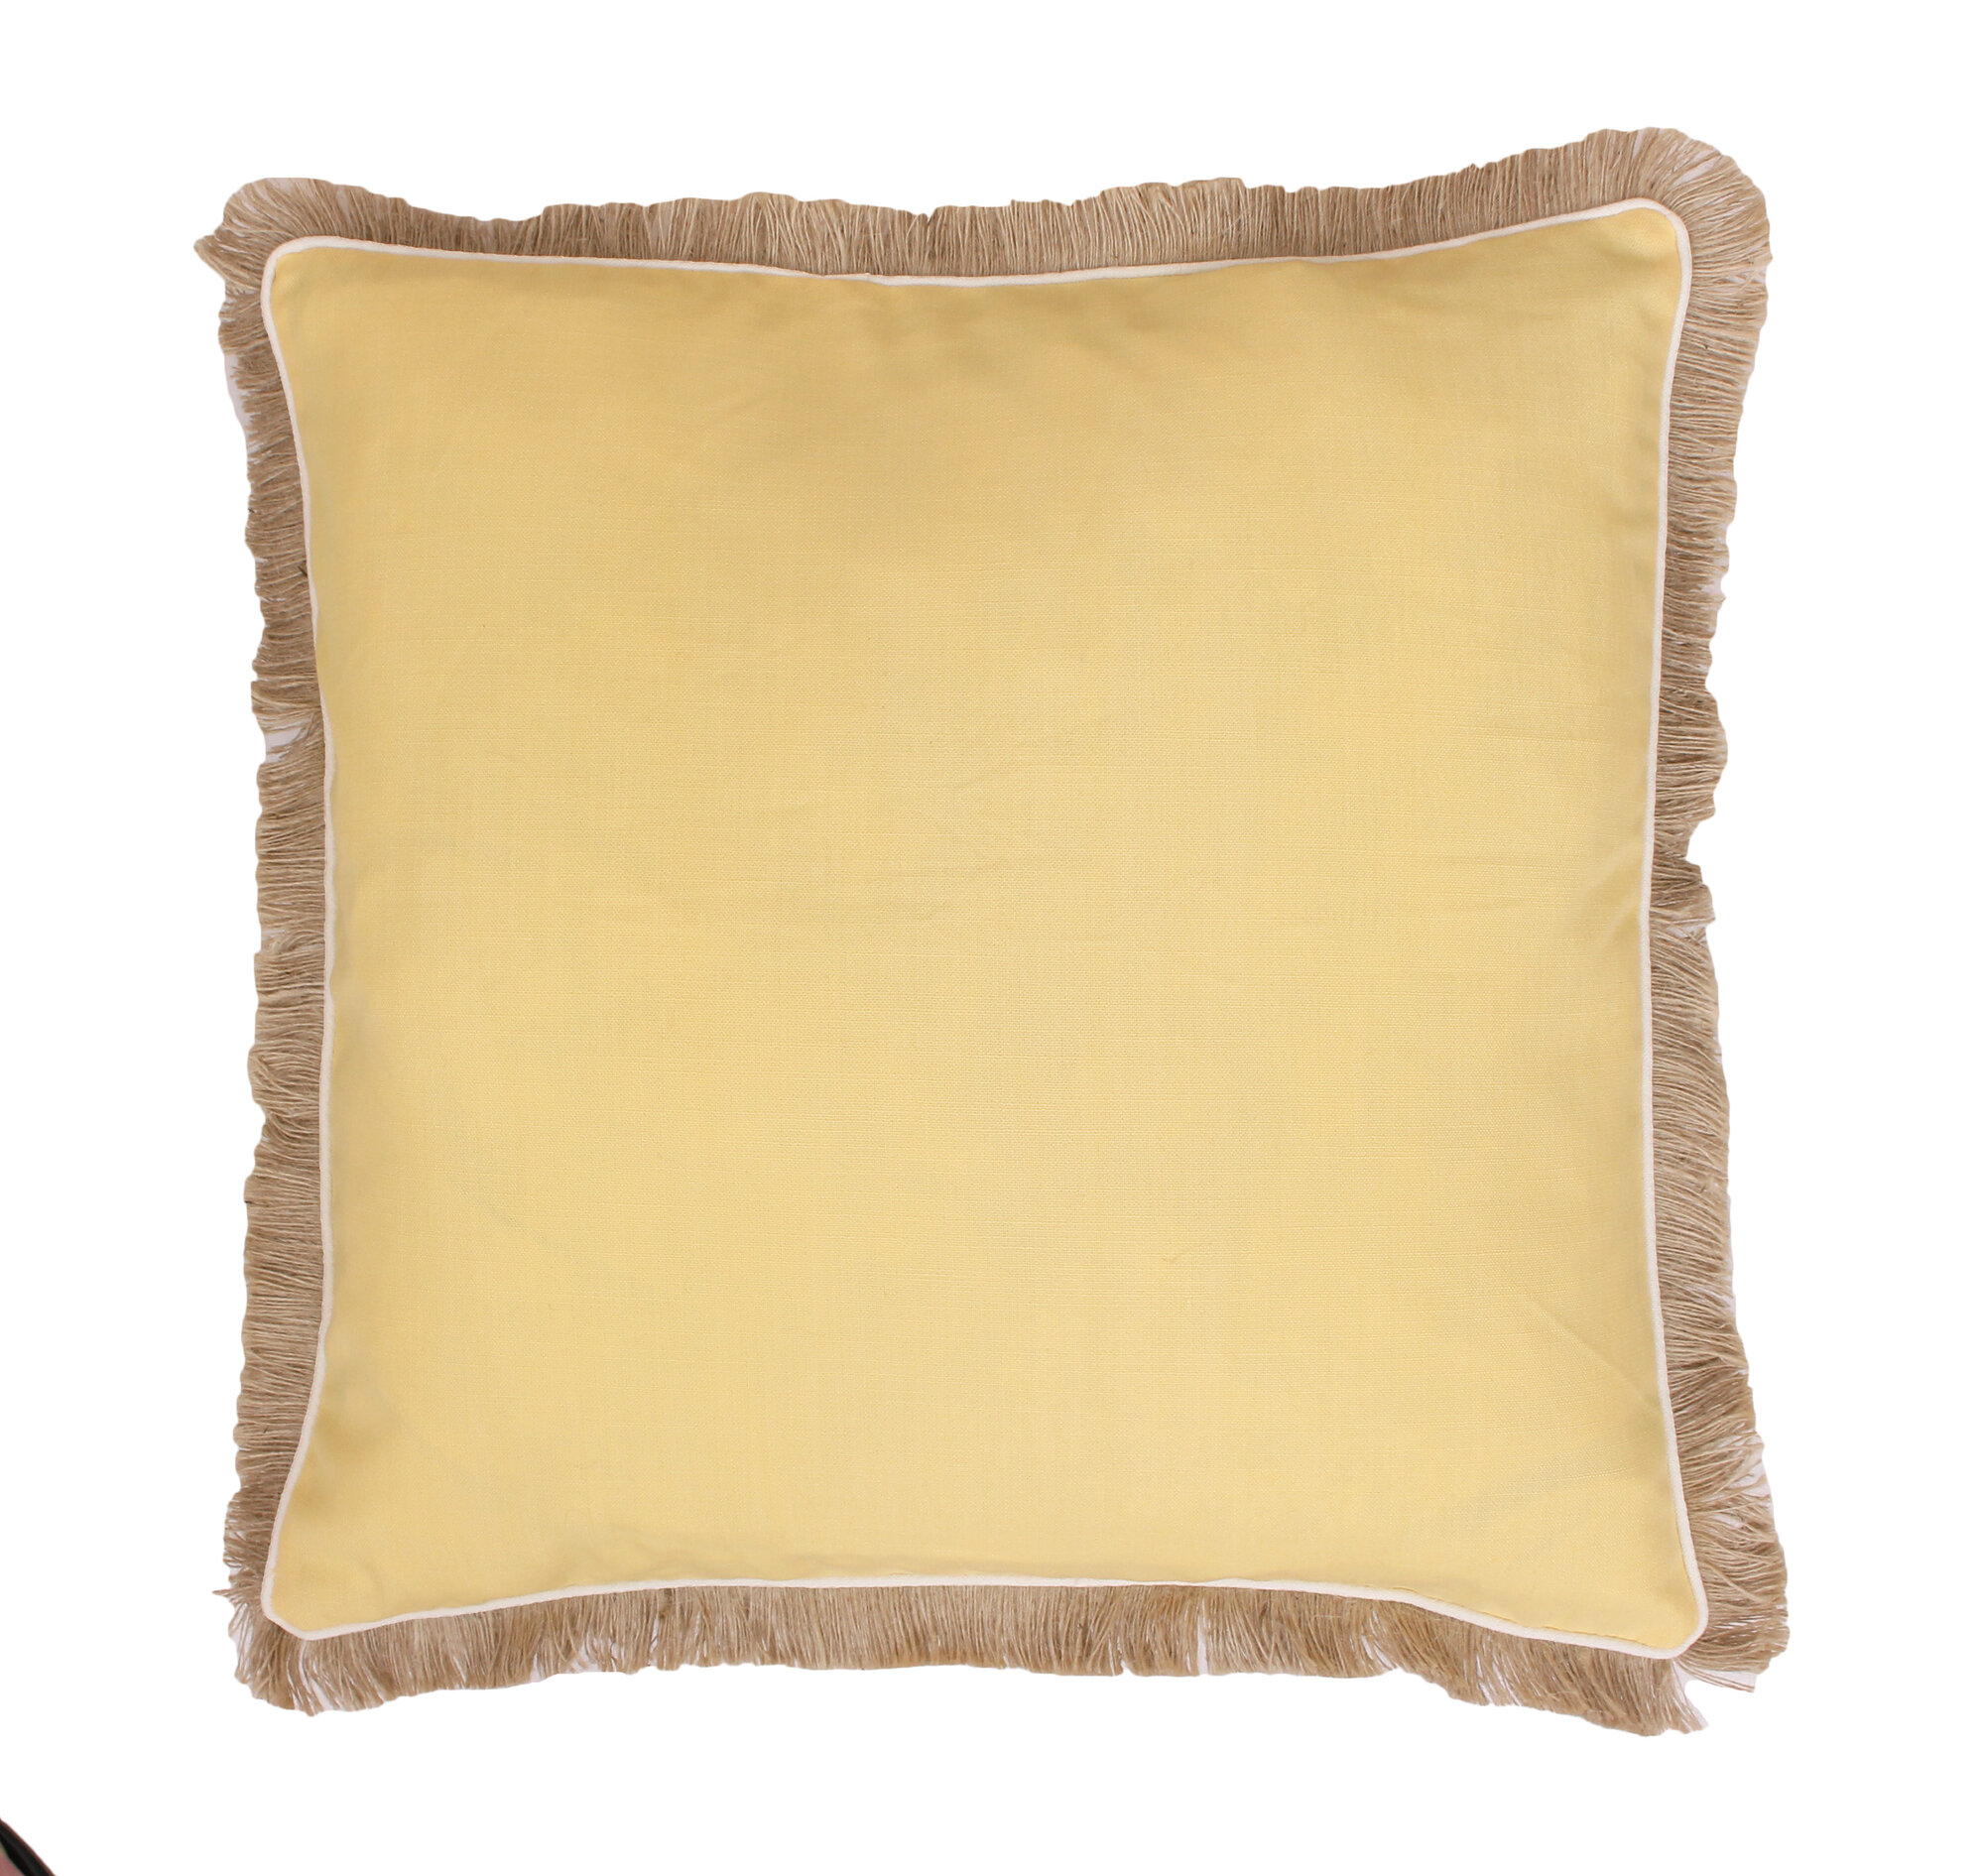 Throw Pillow Trim : Thro by Marlo Lorenz Fringe Welt and Raffia Trim Throw Pillow eBay